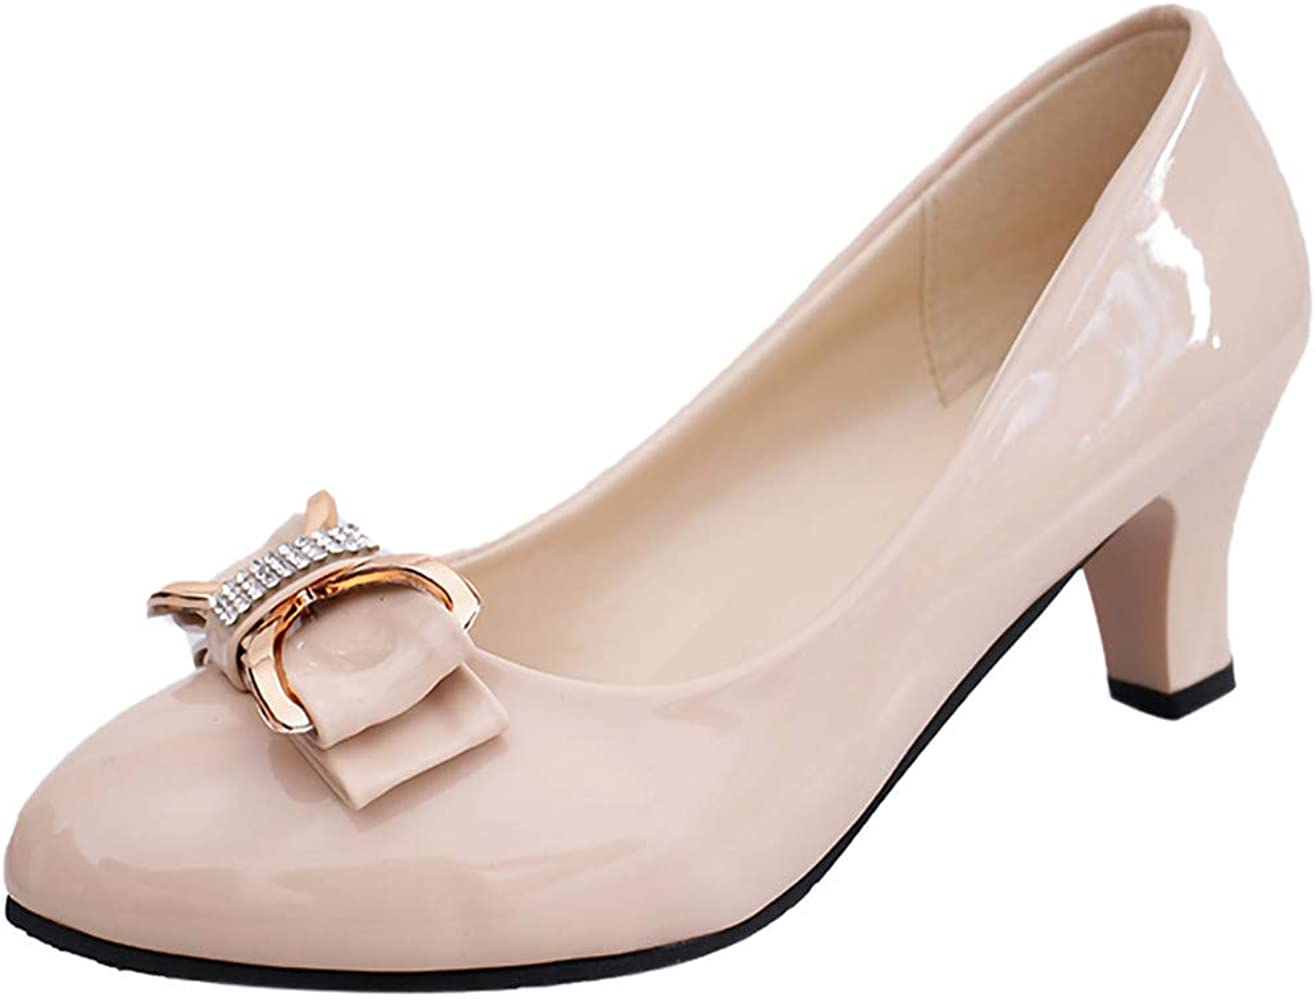 3c8a3e1d0a41b Woman's Casual Patent Leather Point Toe Slip-On Work Shoes Low Chunky Heel  Pumps Ladies Bow Shallow Shoes